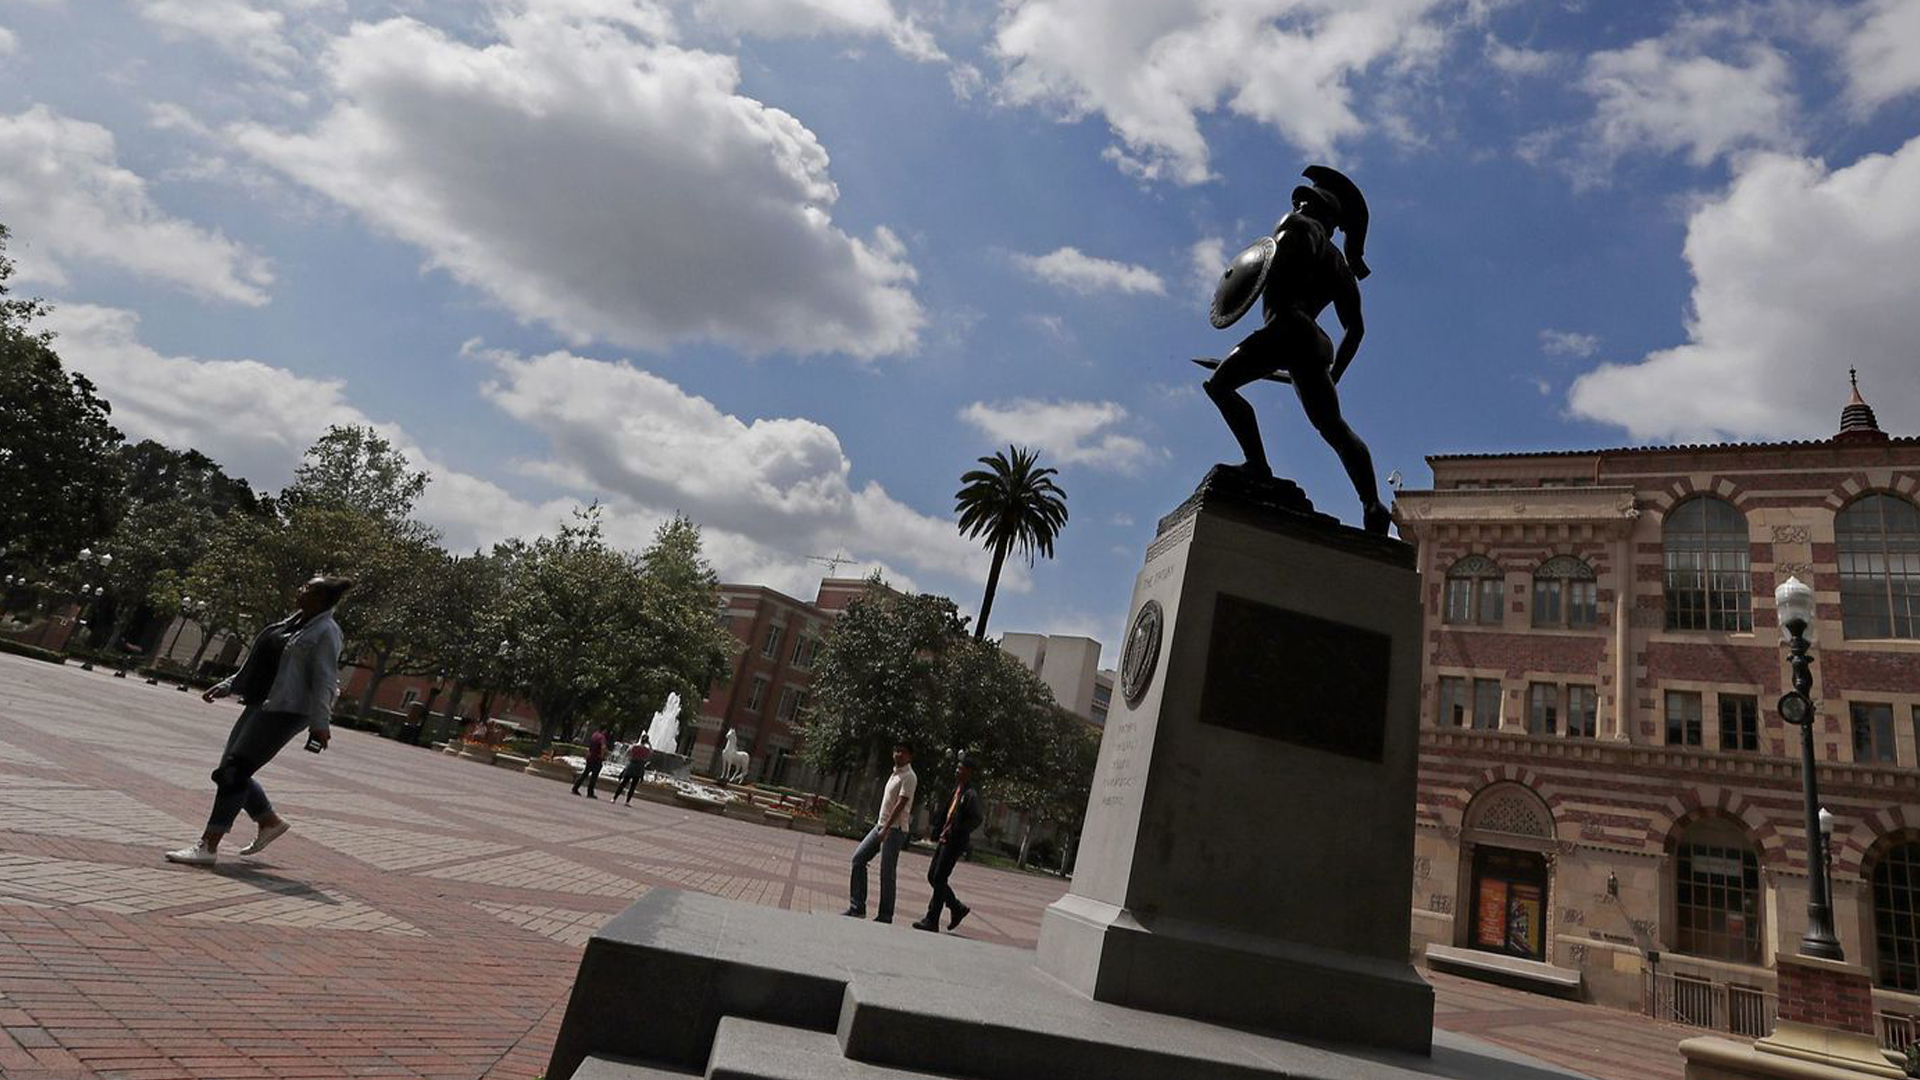 In a file photo, the statue of Tommy Trojan looks up at cloudy skies from his pedestal in the middle of the USC campus. (Credit: Luis Sinco / Los Angeles Times)